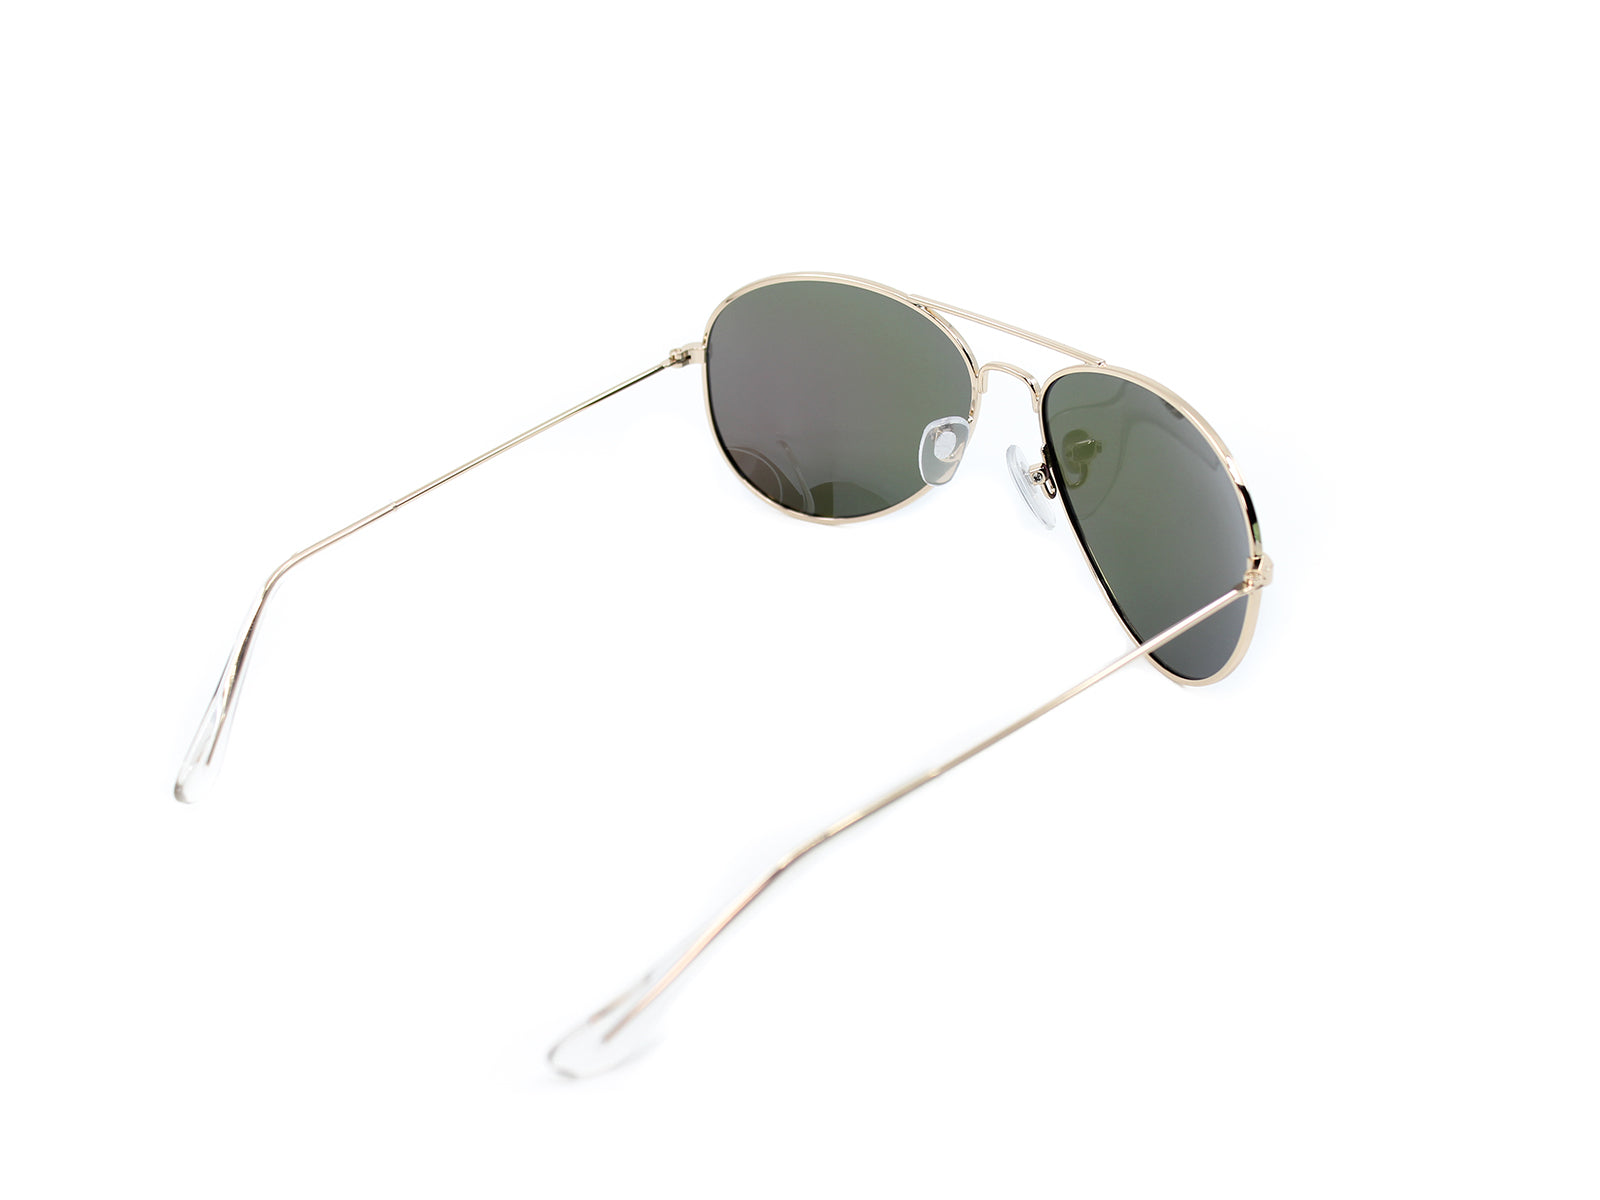 Mavericks - Limes: Gold / Mirrored Green Polarized